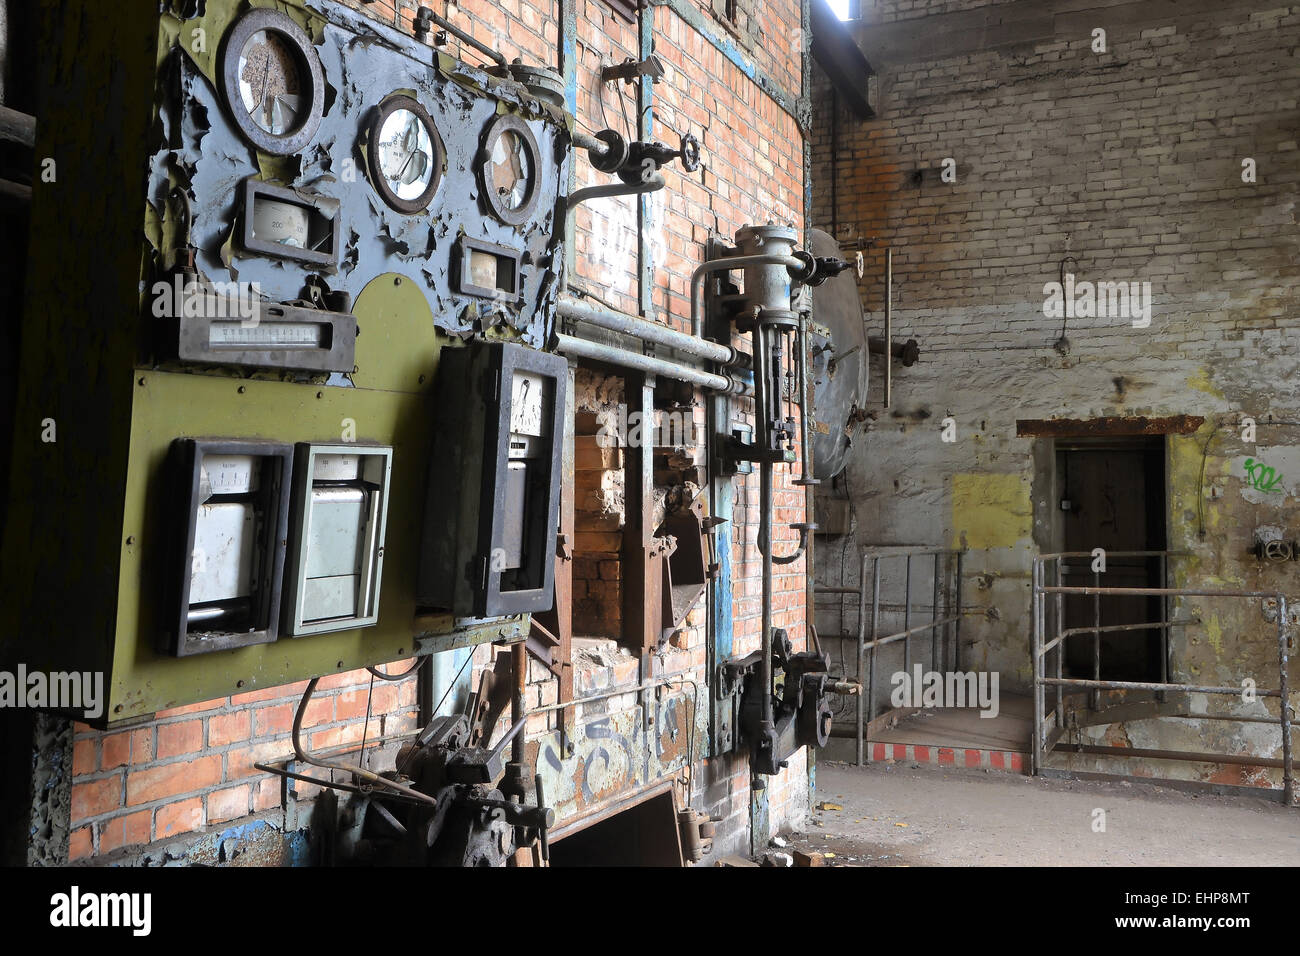 Old Boiler House In A Disused Factory Stock Photo Royalty